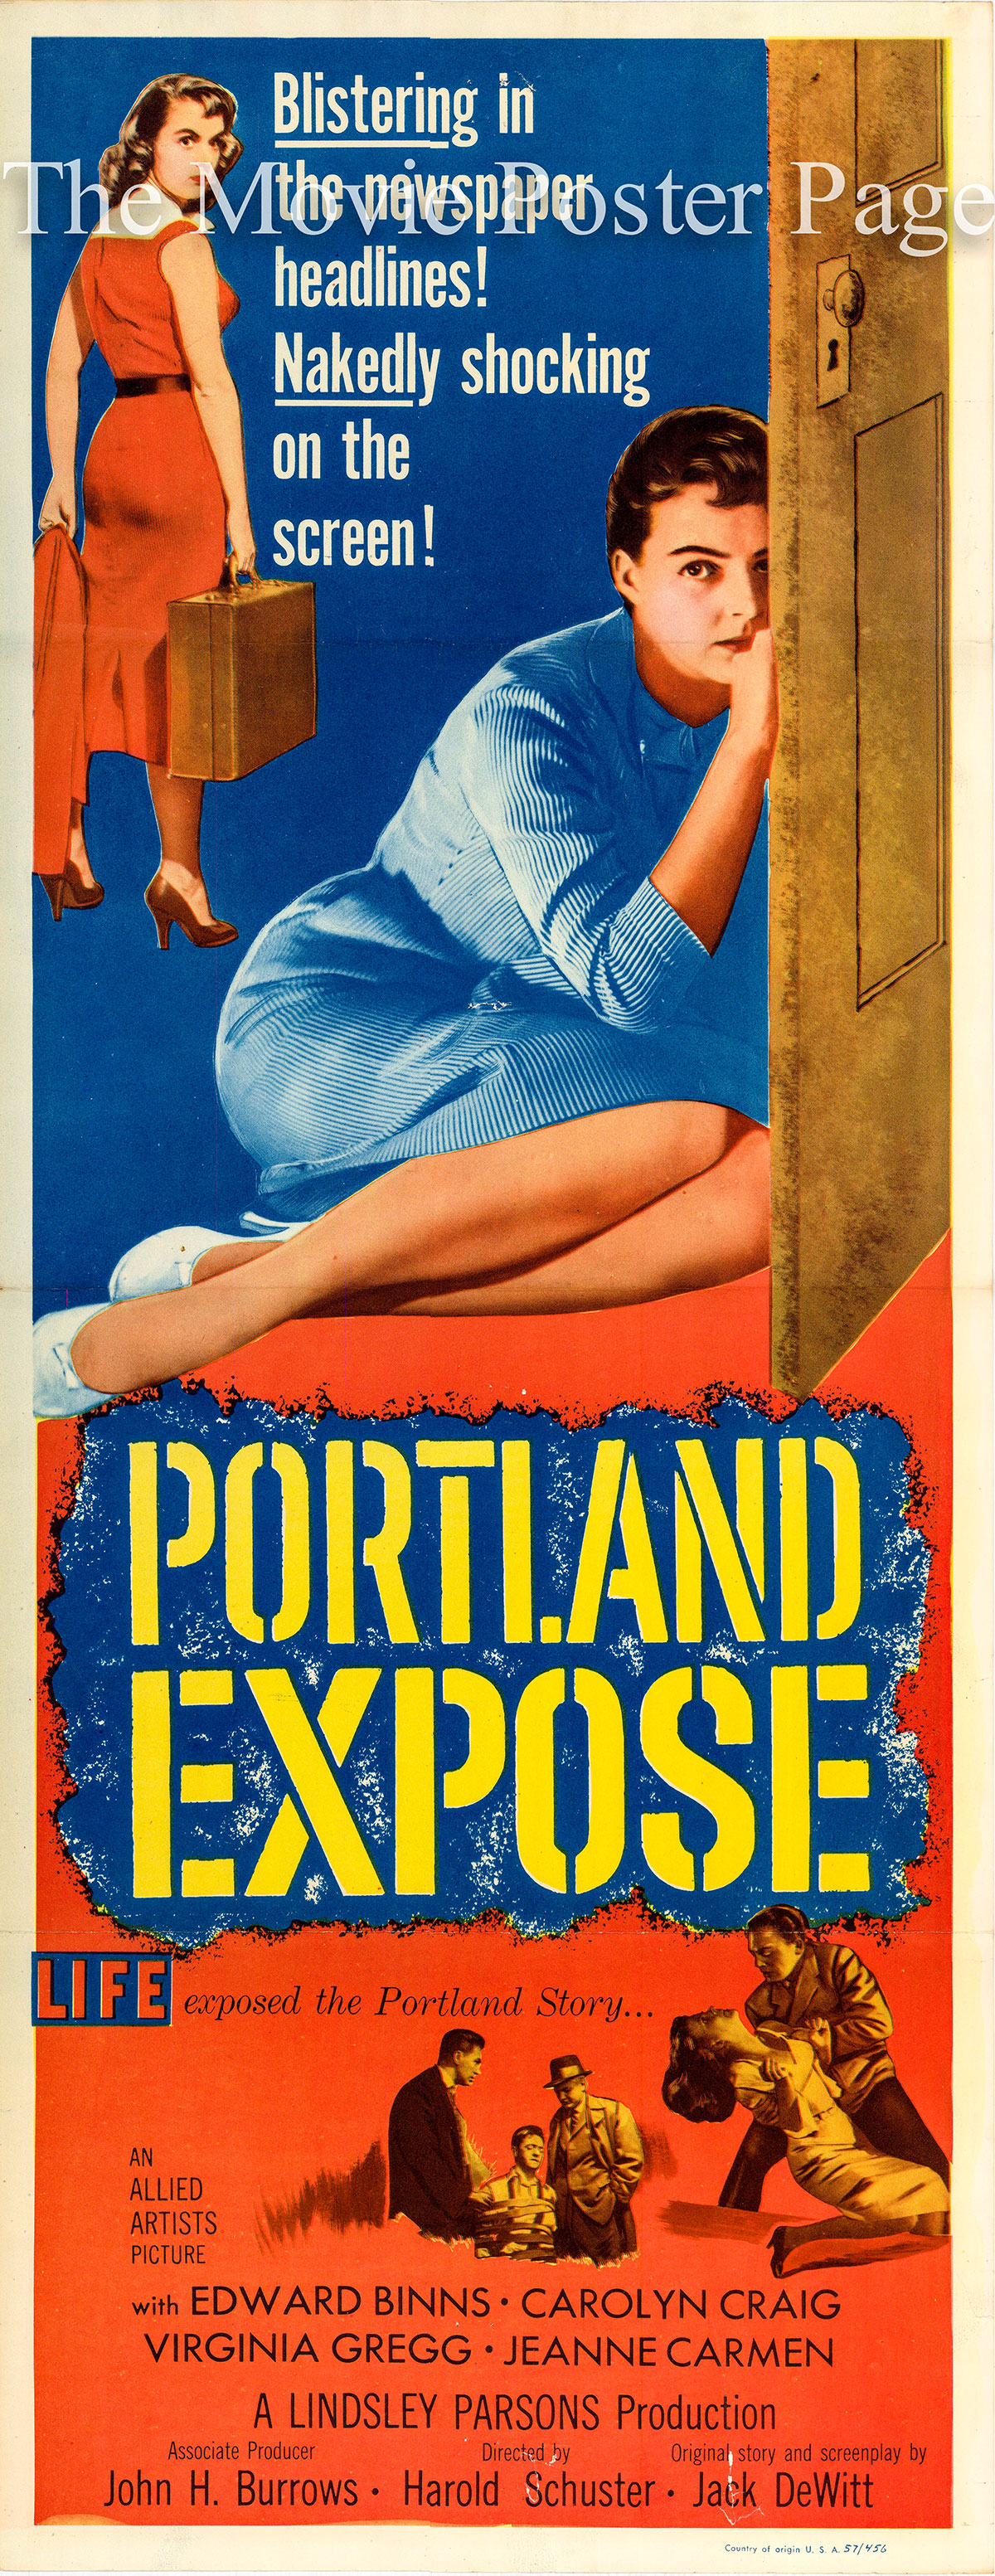 Pictured is a US one-sheet promotional poster for the 1957 Harold D. Schuster film Portland Expose starring Clara Madison.